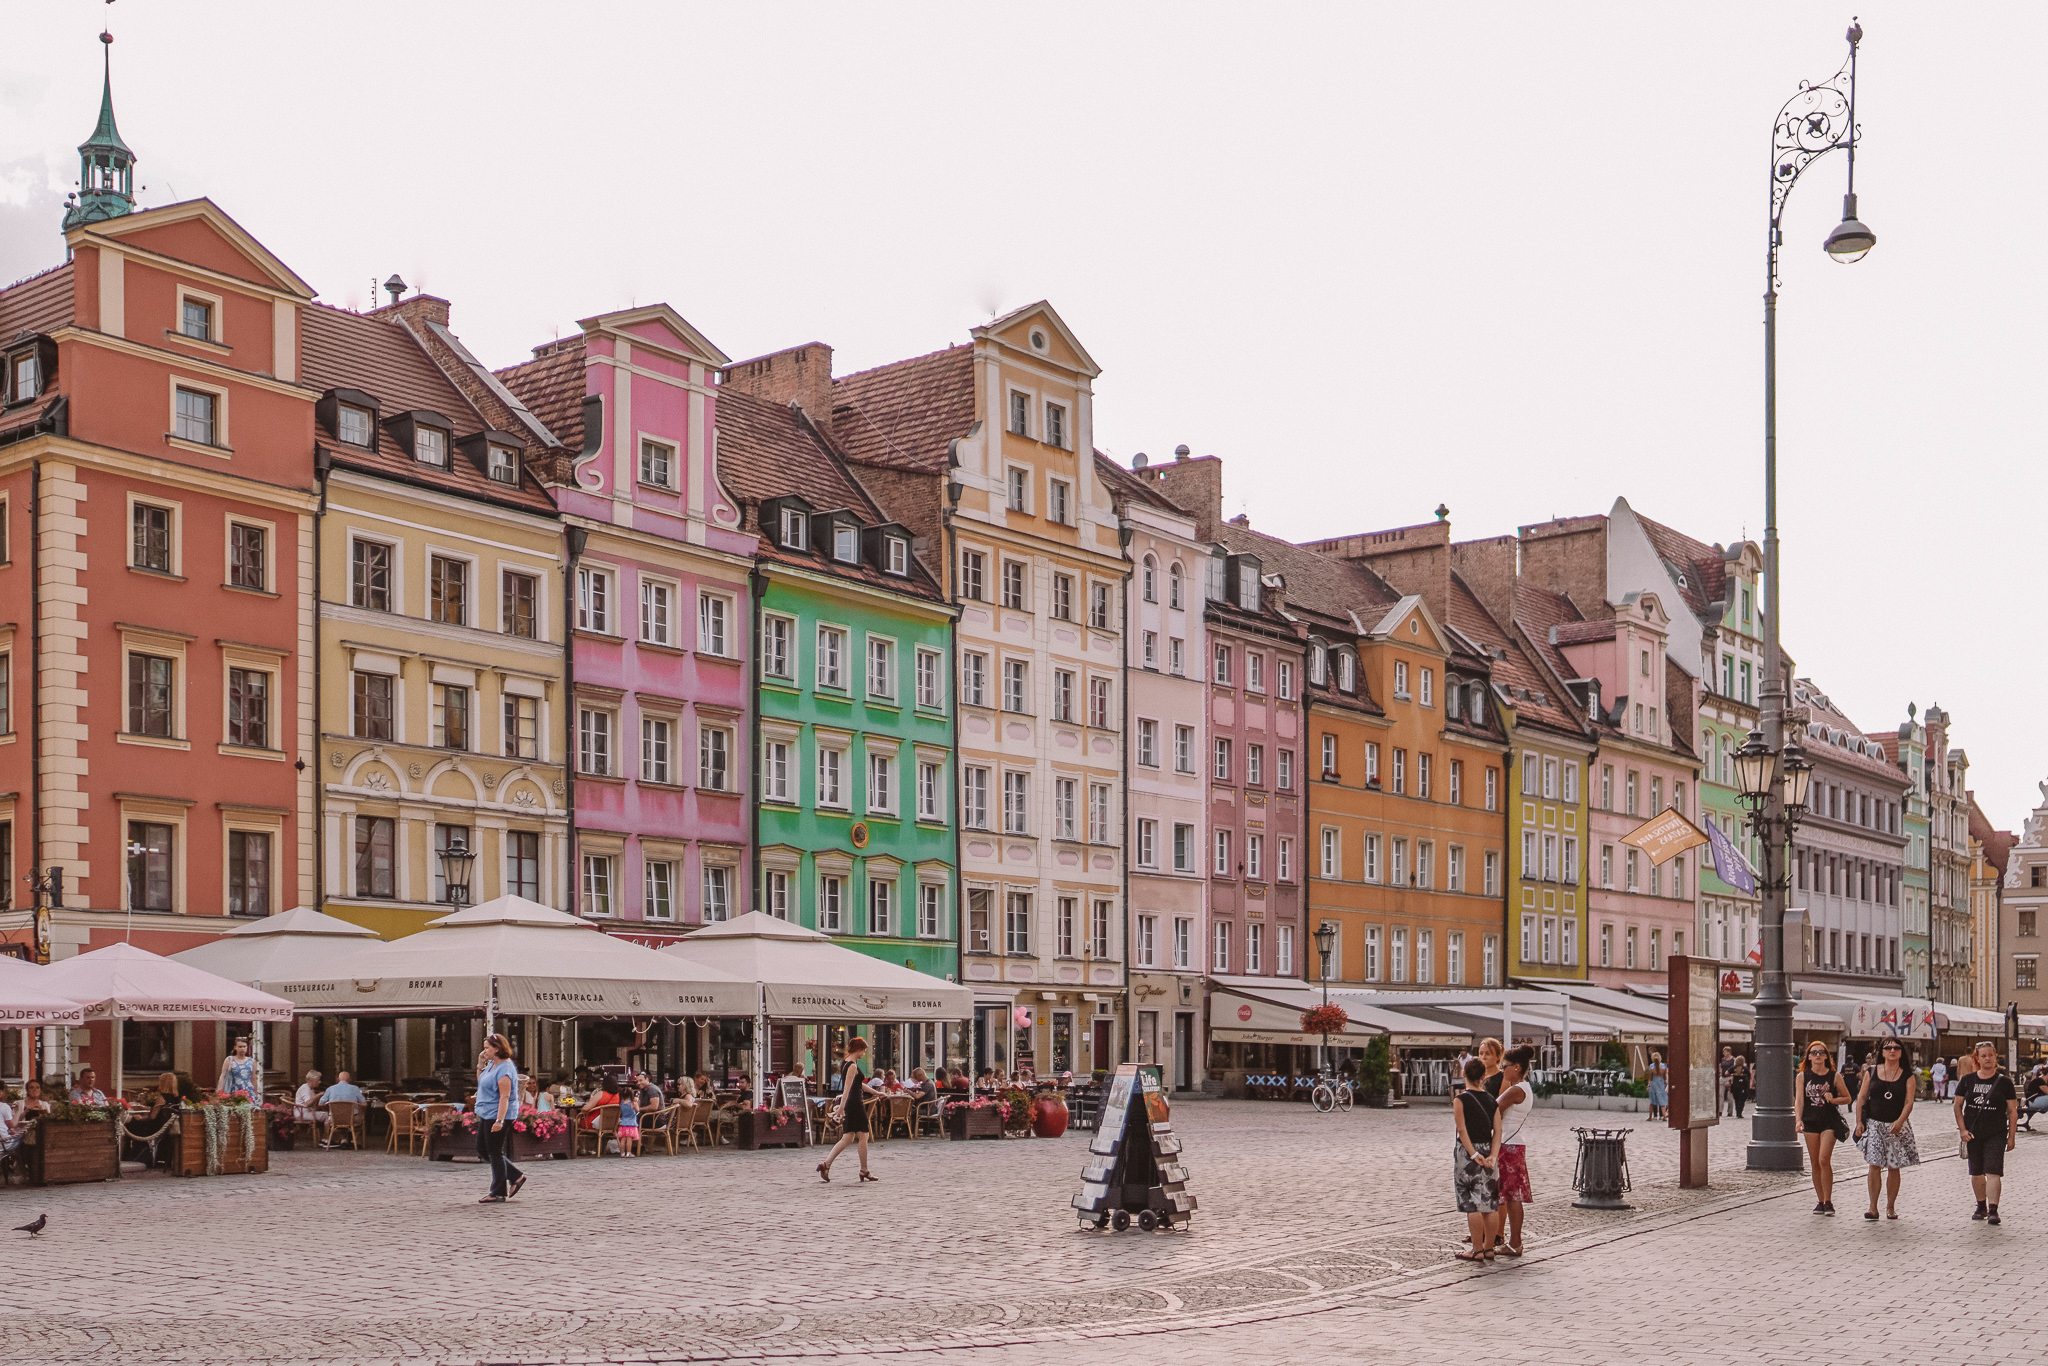 Colourful shops of Wroclaw, Poland